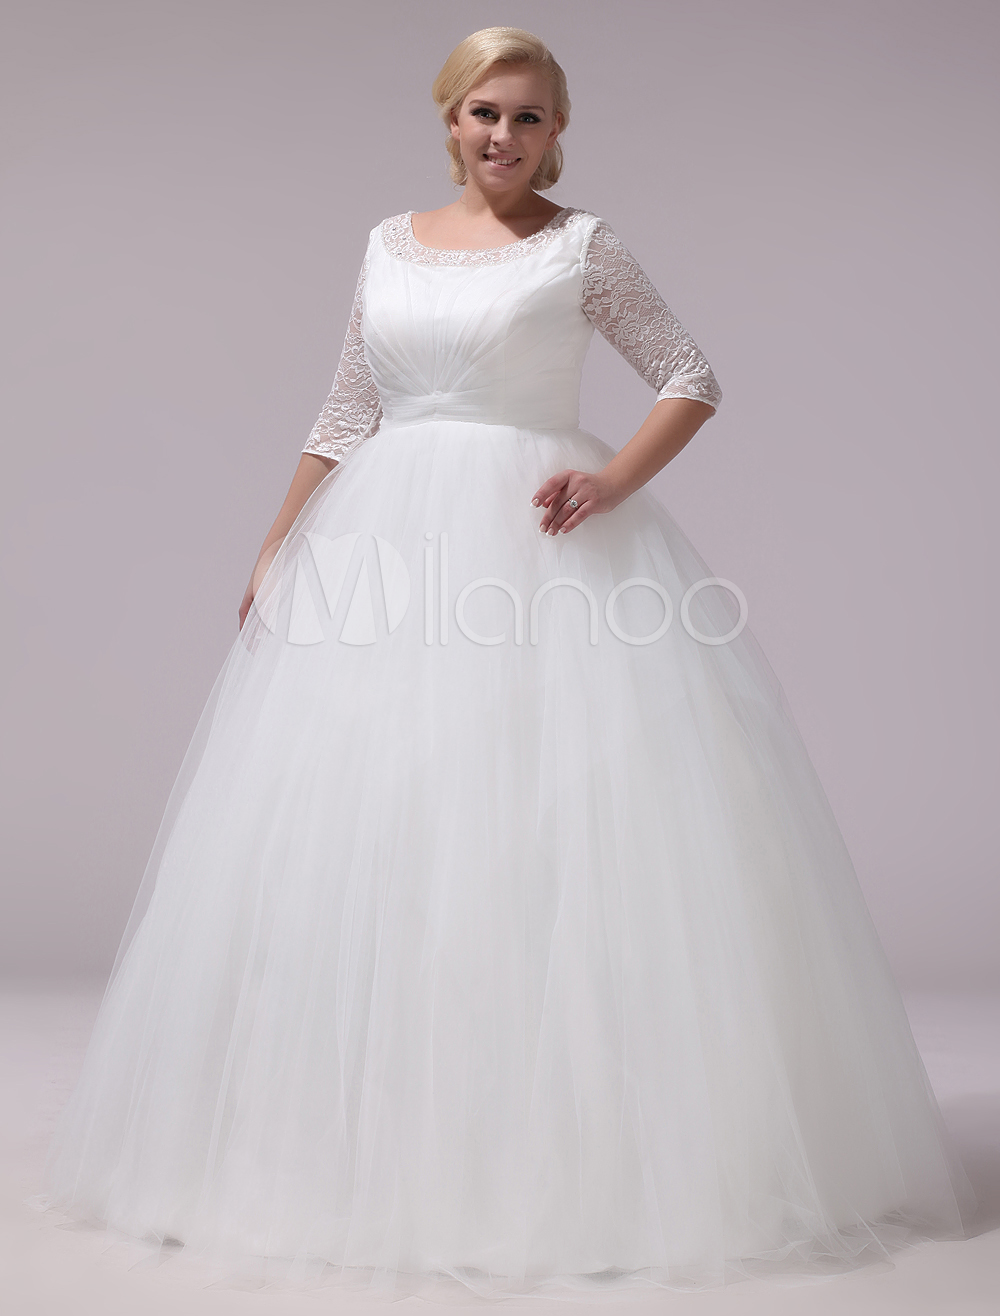 Plus size wedding dresses tulle lace half sleeve bridal gown ivory a